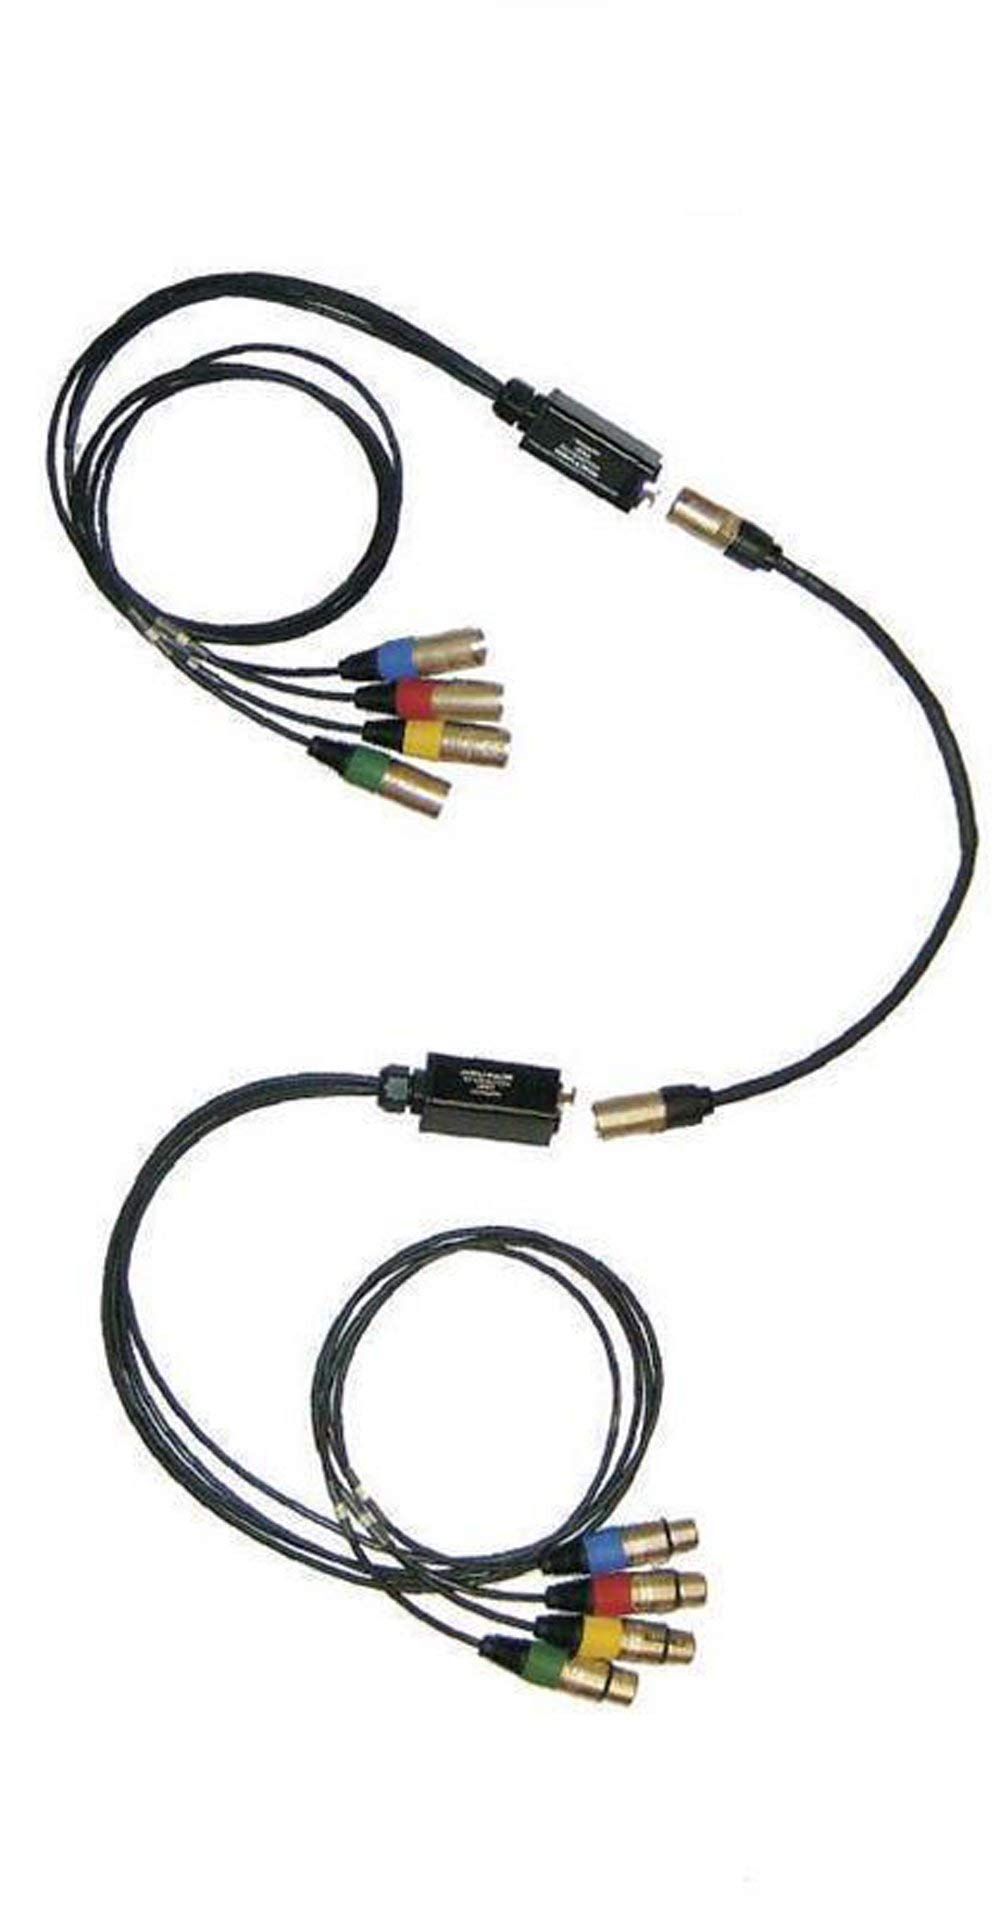 Other brand 2 Digital Snakes Converts DMX - Cat5 Includes (4) 5 Pin Female (4) 5 Pin Male by Other brand